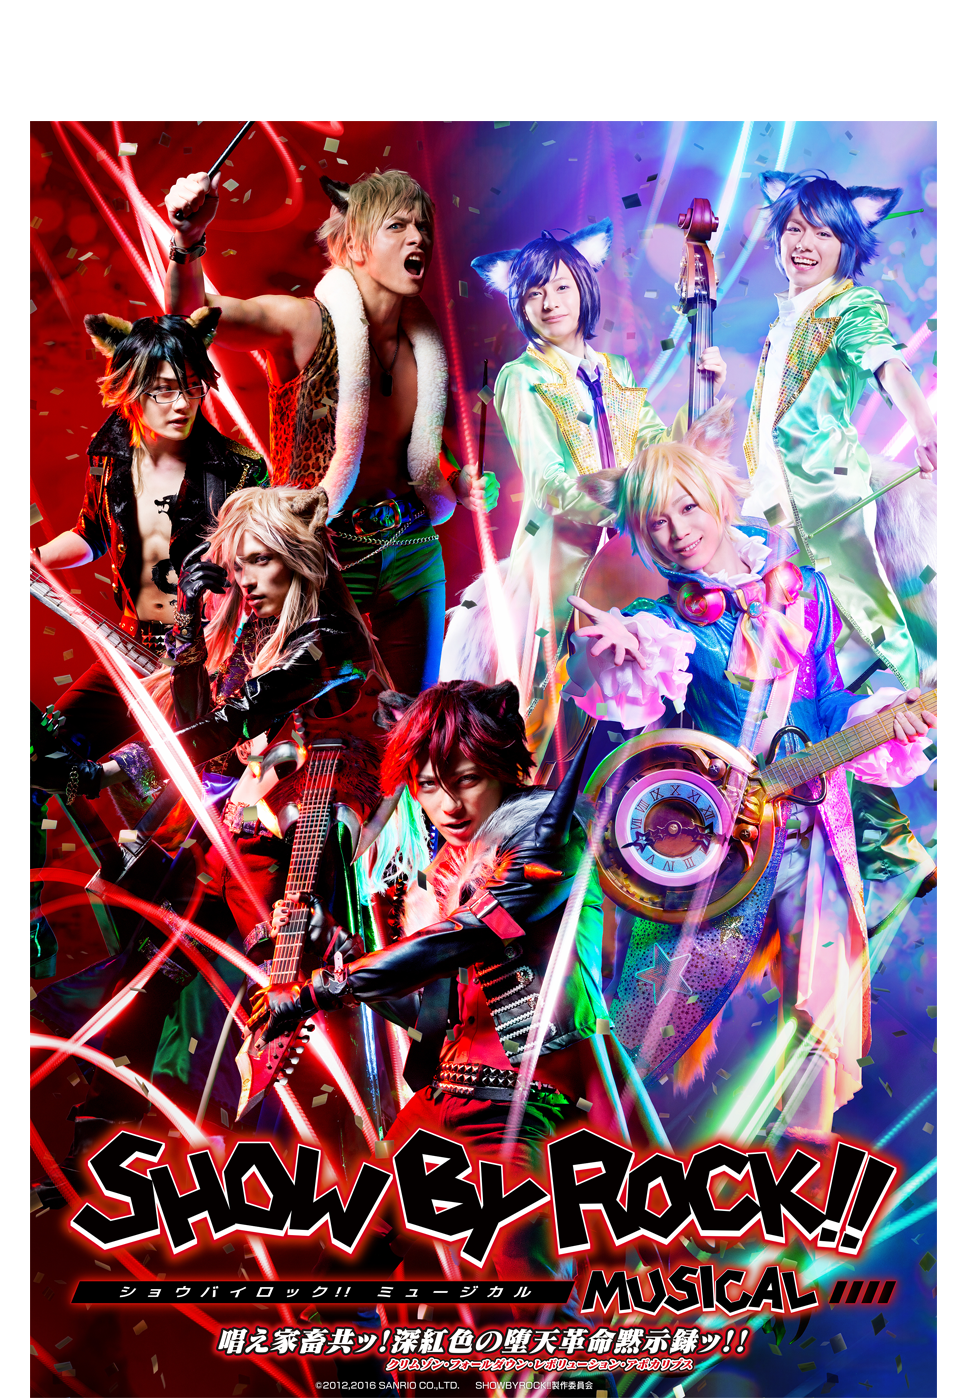 SHOW BY ROCK!!の画像 p1_22